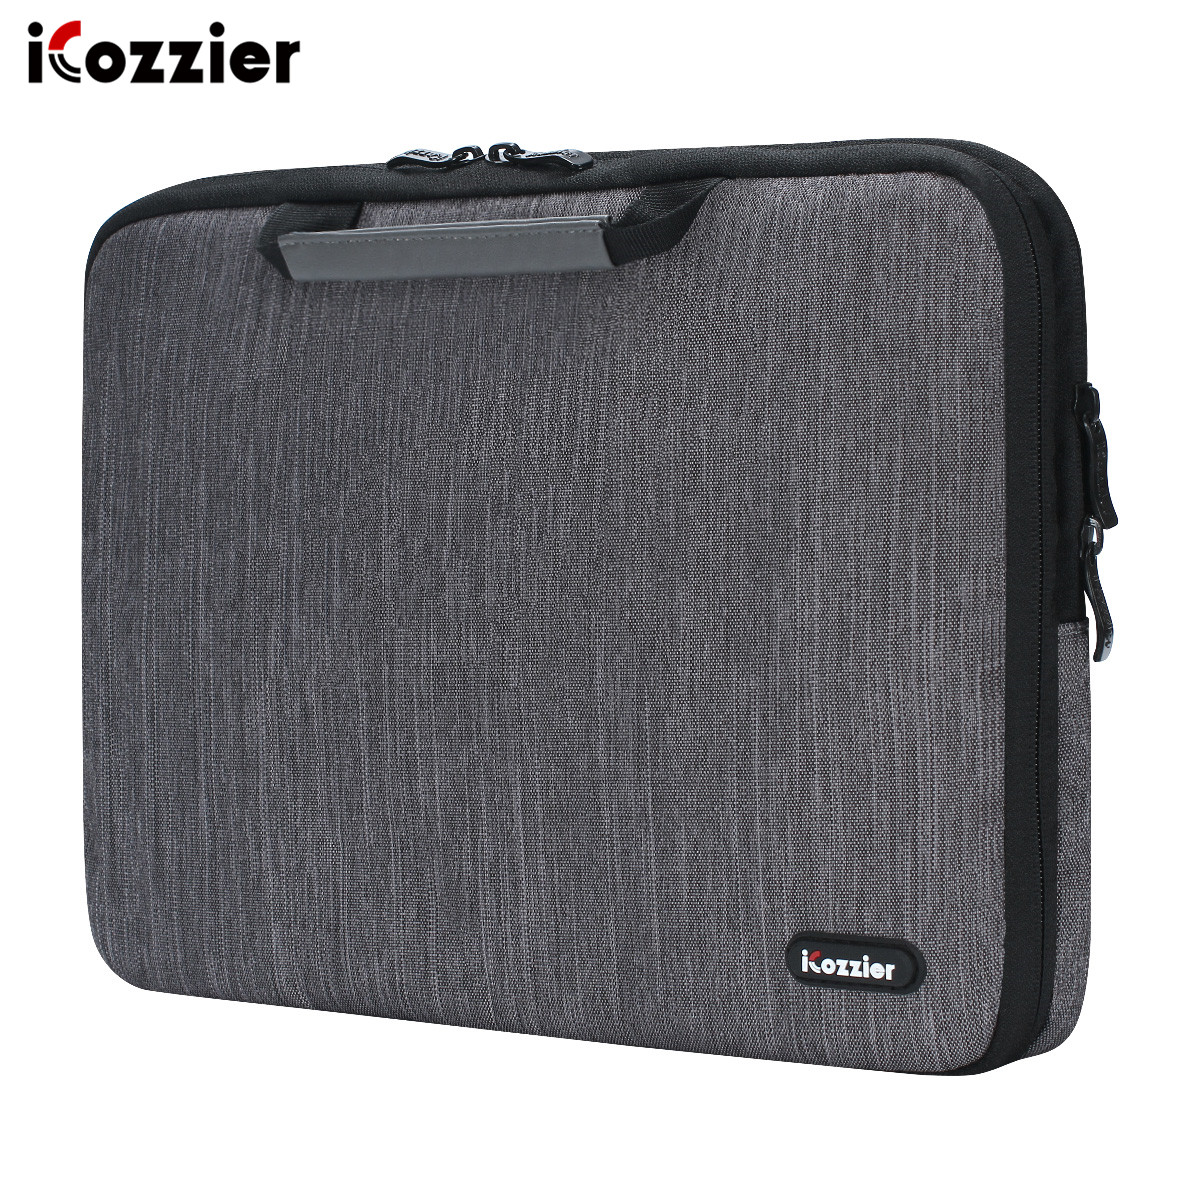 iCozzier 11.6/13./15.6/17.3 inch handle electronic accessories strap laptop sleeve case bag protective bag for 15.6 notebook